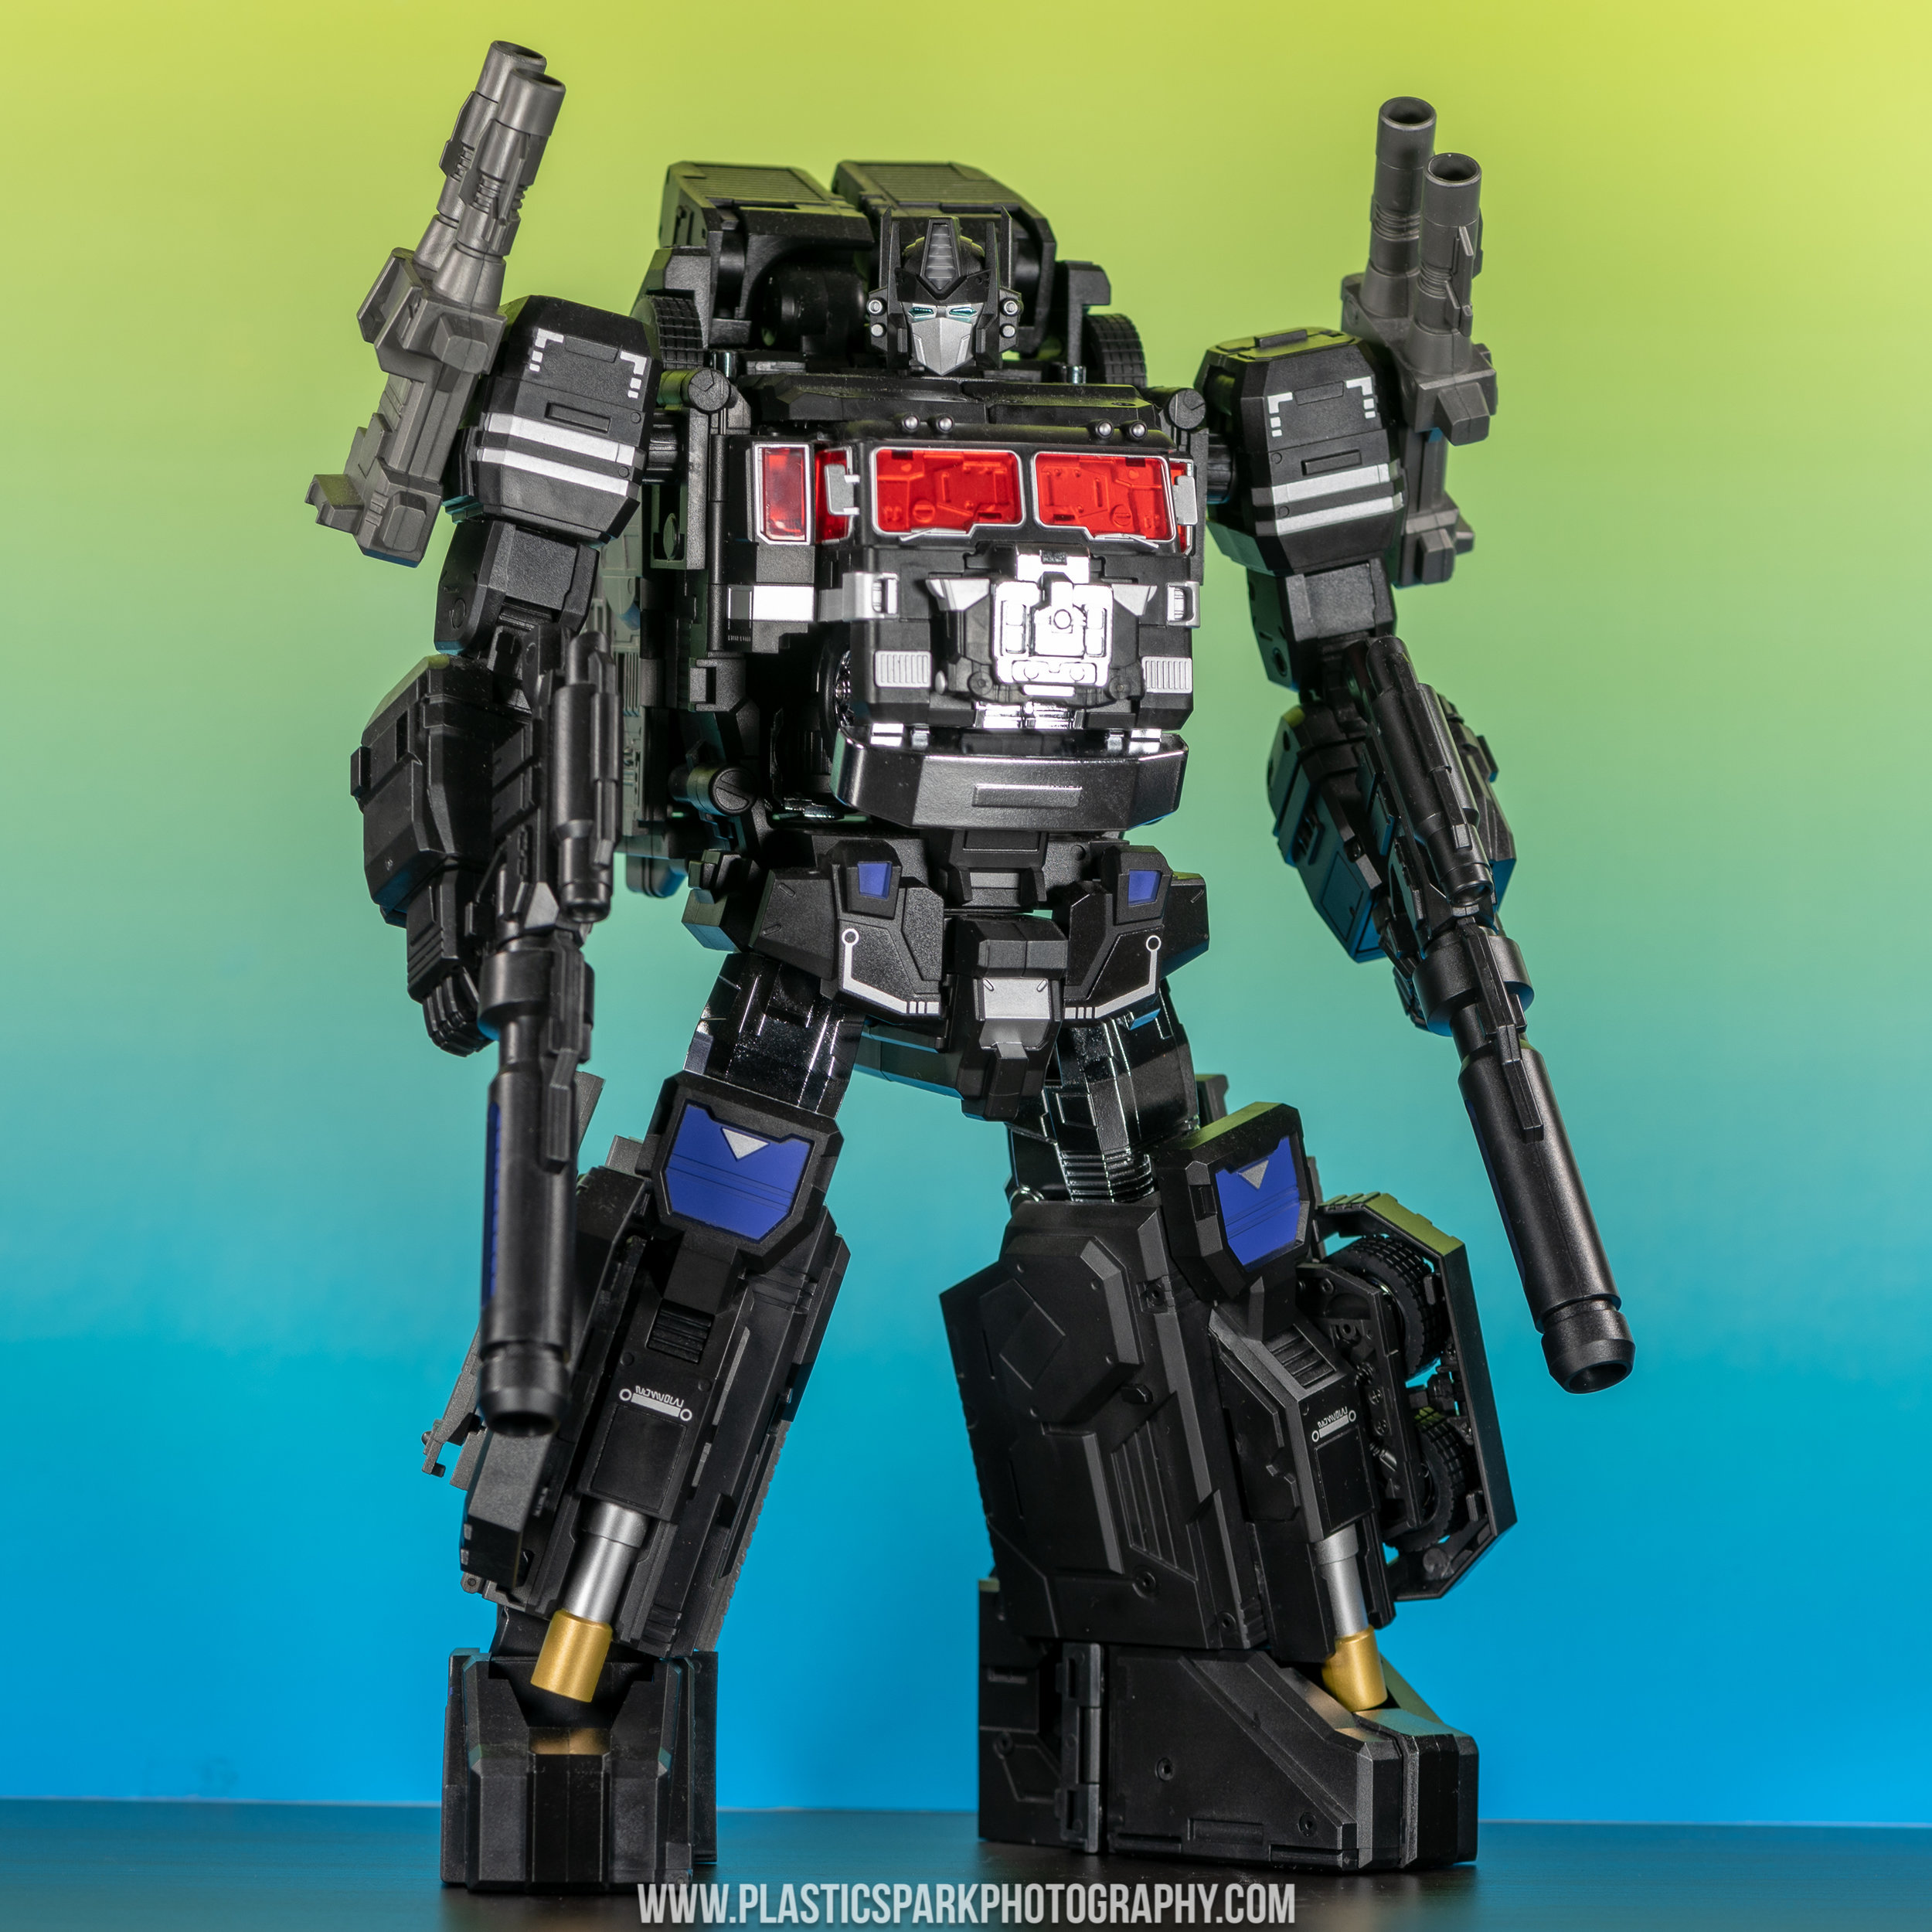 Fans Hobby MB-06a (1 of 2).jpg